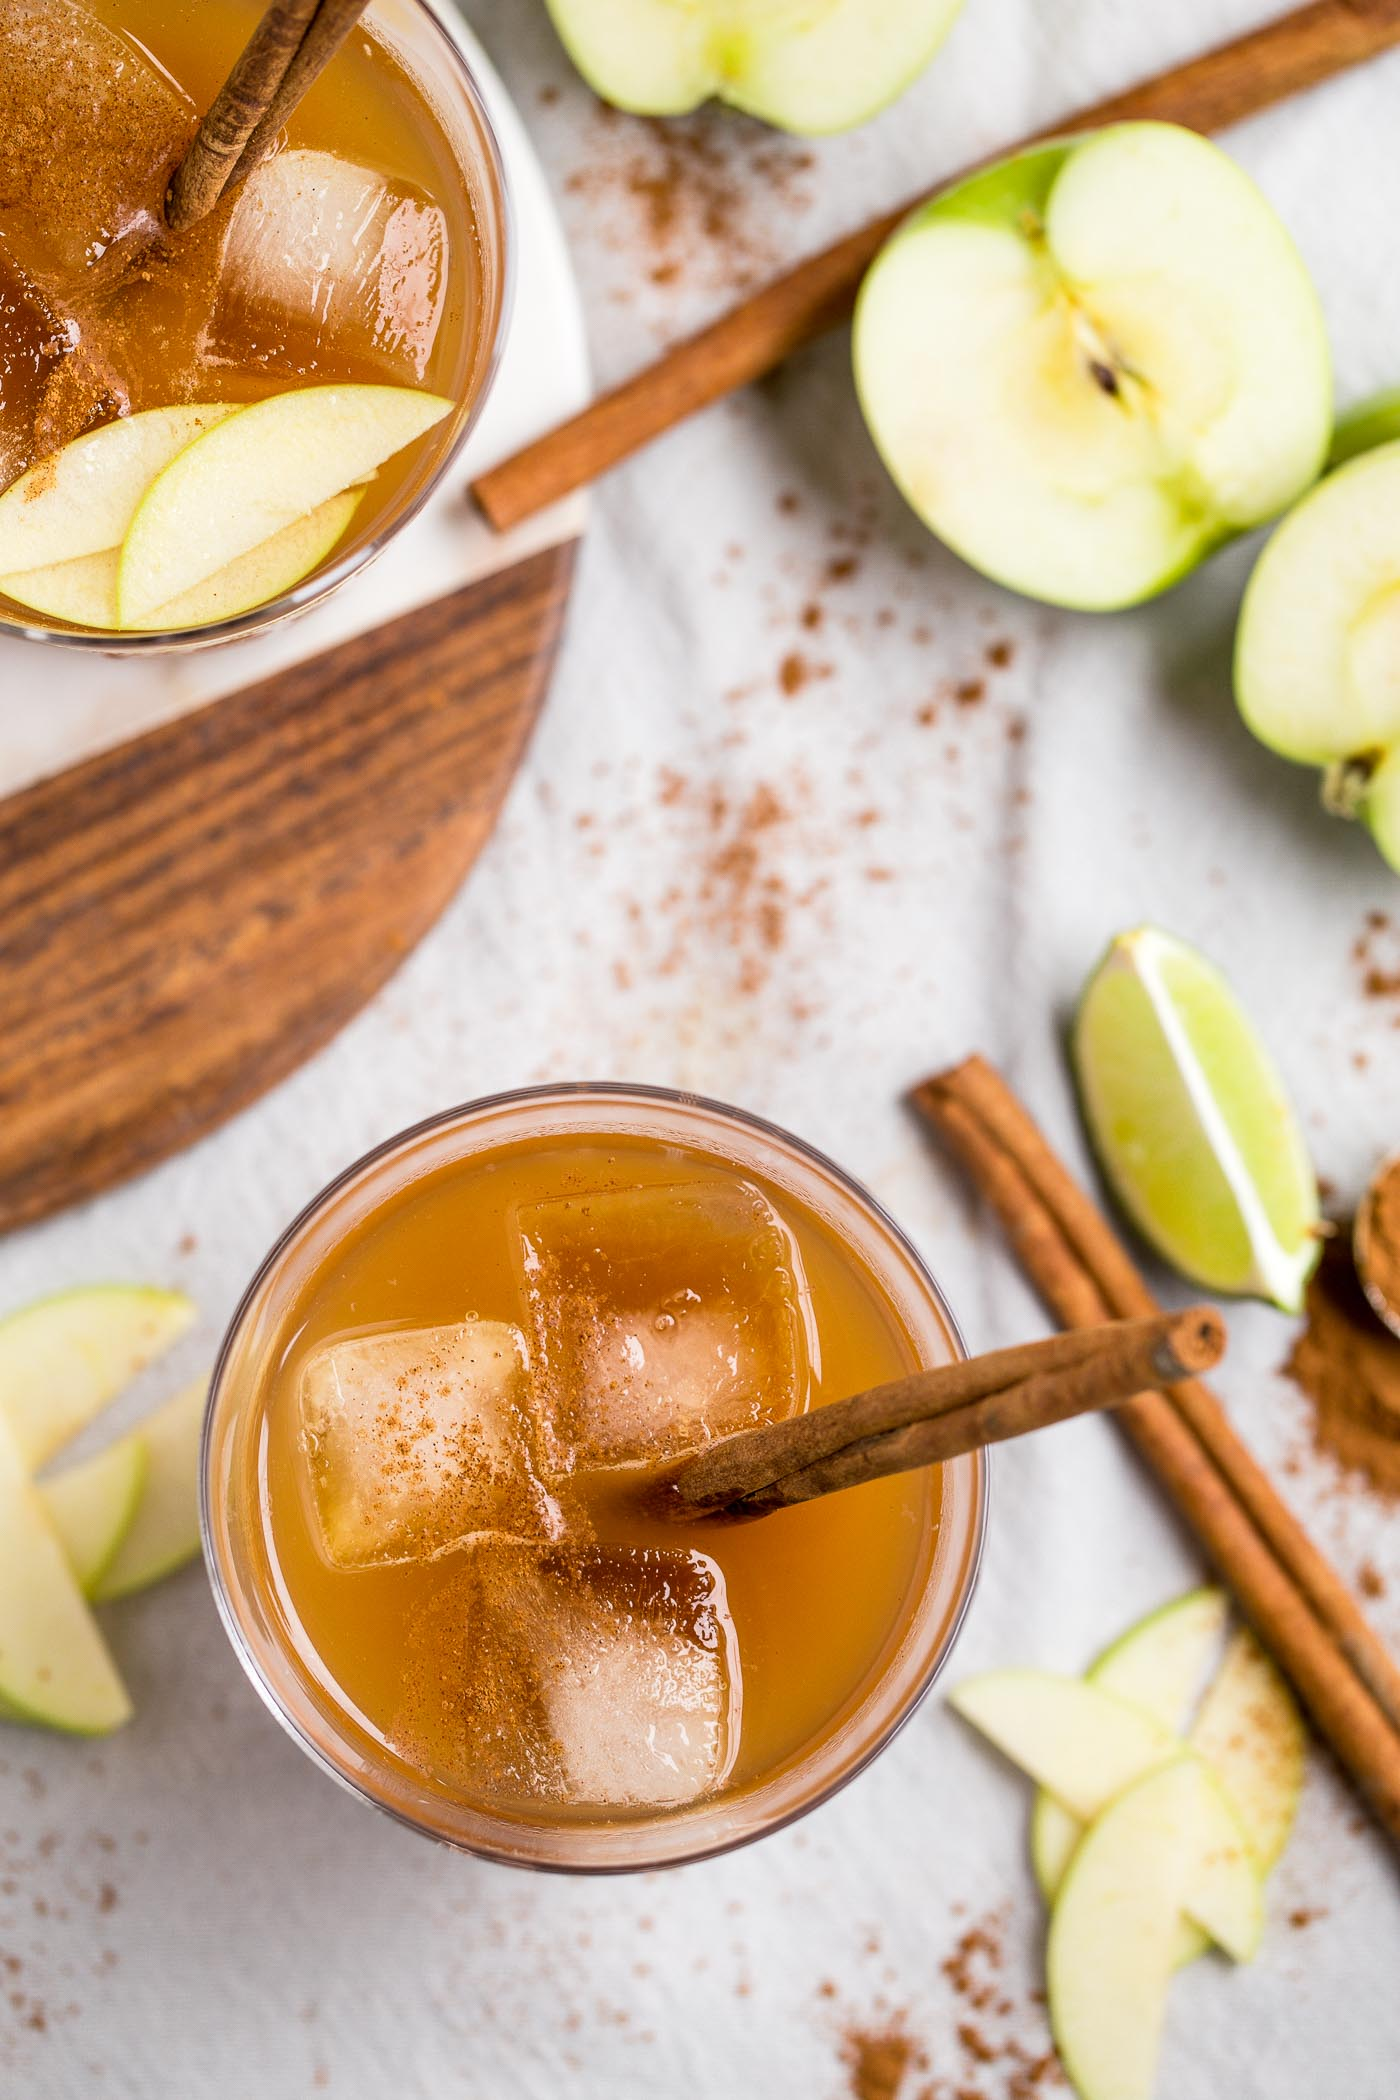 easy & cozy bourbon ginger cider cocktails perfect for autumn! the bold flavor of a nice bourbon is perfectly balanced out by warming notes of a good apple cider & ground cinnamon, the spice of a strong ginger beer, & the bright tang of fresh lime. you will love making these bourbon ginger cider cocktails for your friends & family all autumn long! #playswellwithbutter #easycocktailrecipe #bourbon #autumncocktail #fallcocktail